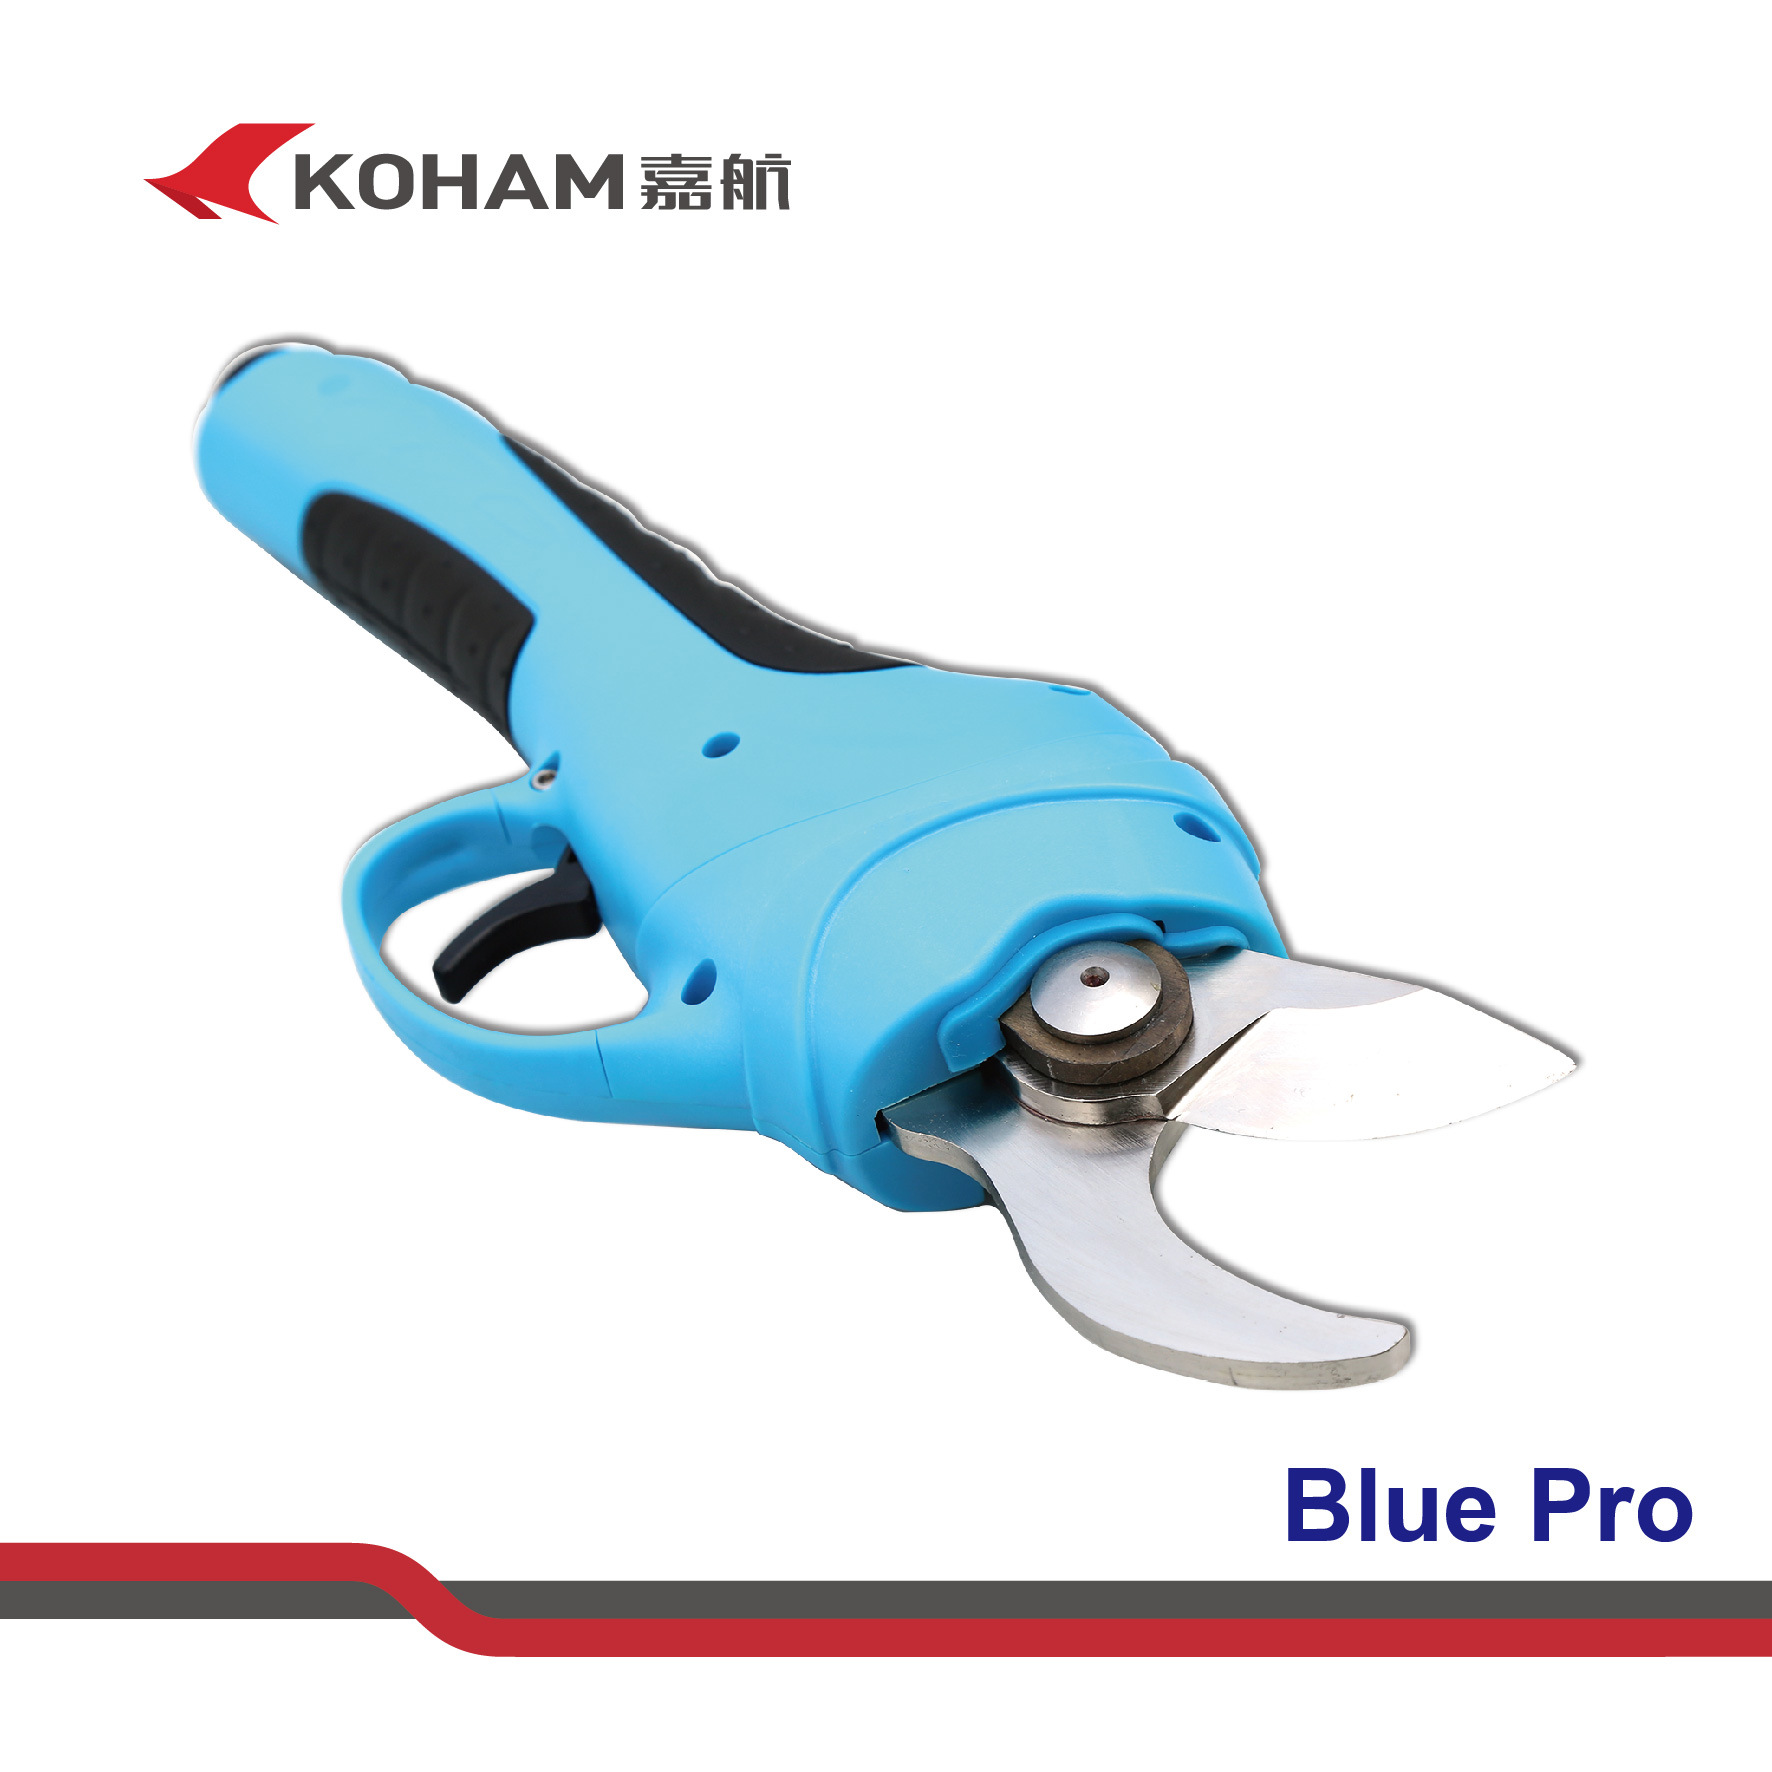 Koham Tools 6 6ah 5c Lithium Battery Gardening Loppers Electronic Secateurs  Powered Scissors Electric Pruners Handheld Pruning Shears Bypass Trimmers. China Koham Tools 6 6ah 5c Lithium Battery Gardening Loppers